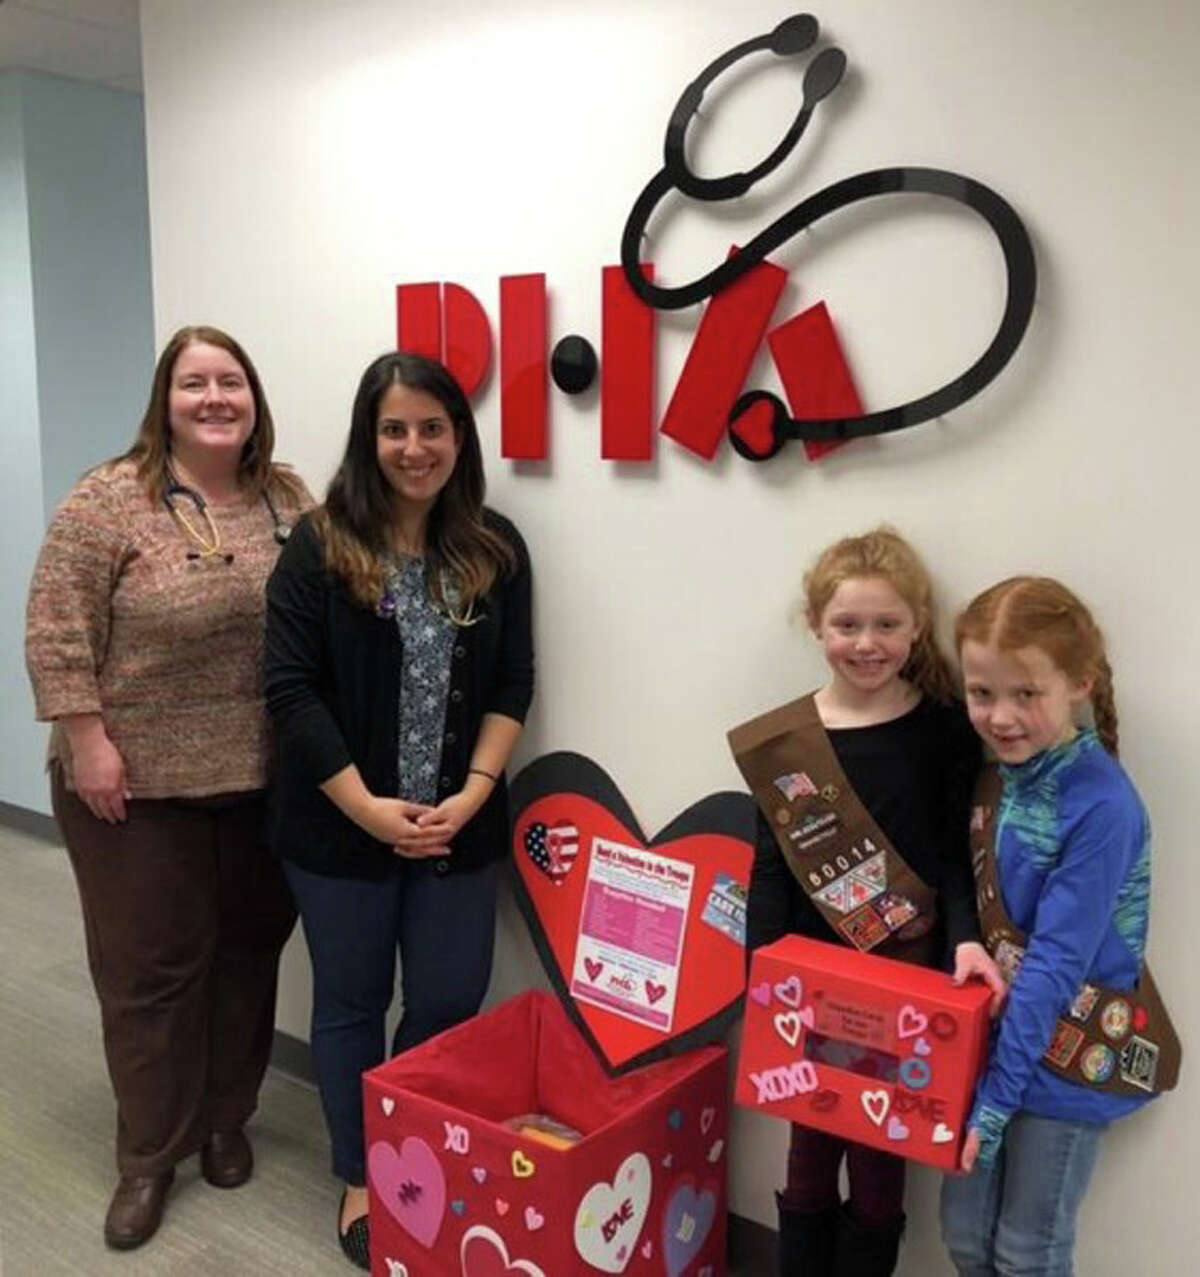 Pediatric Healthcare Associates hosted their annual Soldier Supply Drive to send care packages to the deployed troops overseas. Handmade Valentine's Day cards thanking the soldiers for their commitment and bravery were encouraged. Dr. Corrie Steeves and Dr. Maggie Kissel were presented with cards from Gianna Garofalo and Aria Chiaramonte of Brownie Troop 60014. - Contributed photo